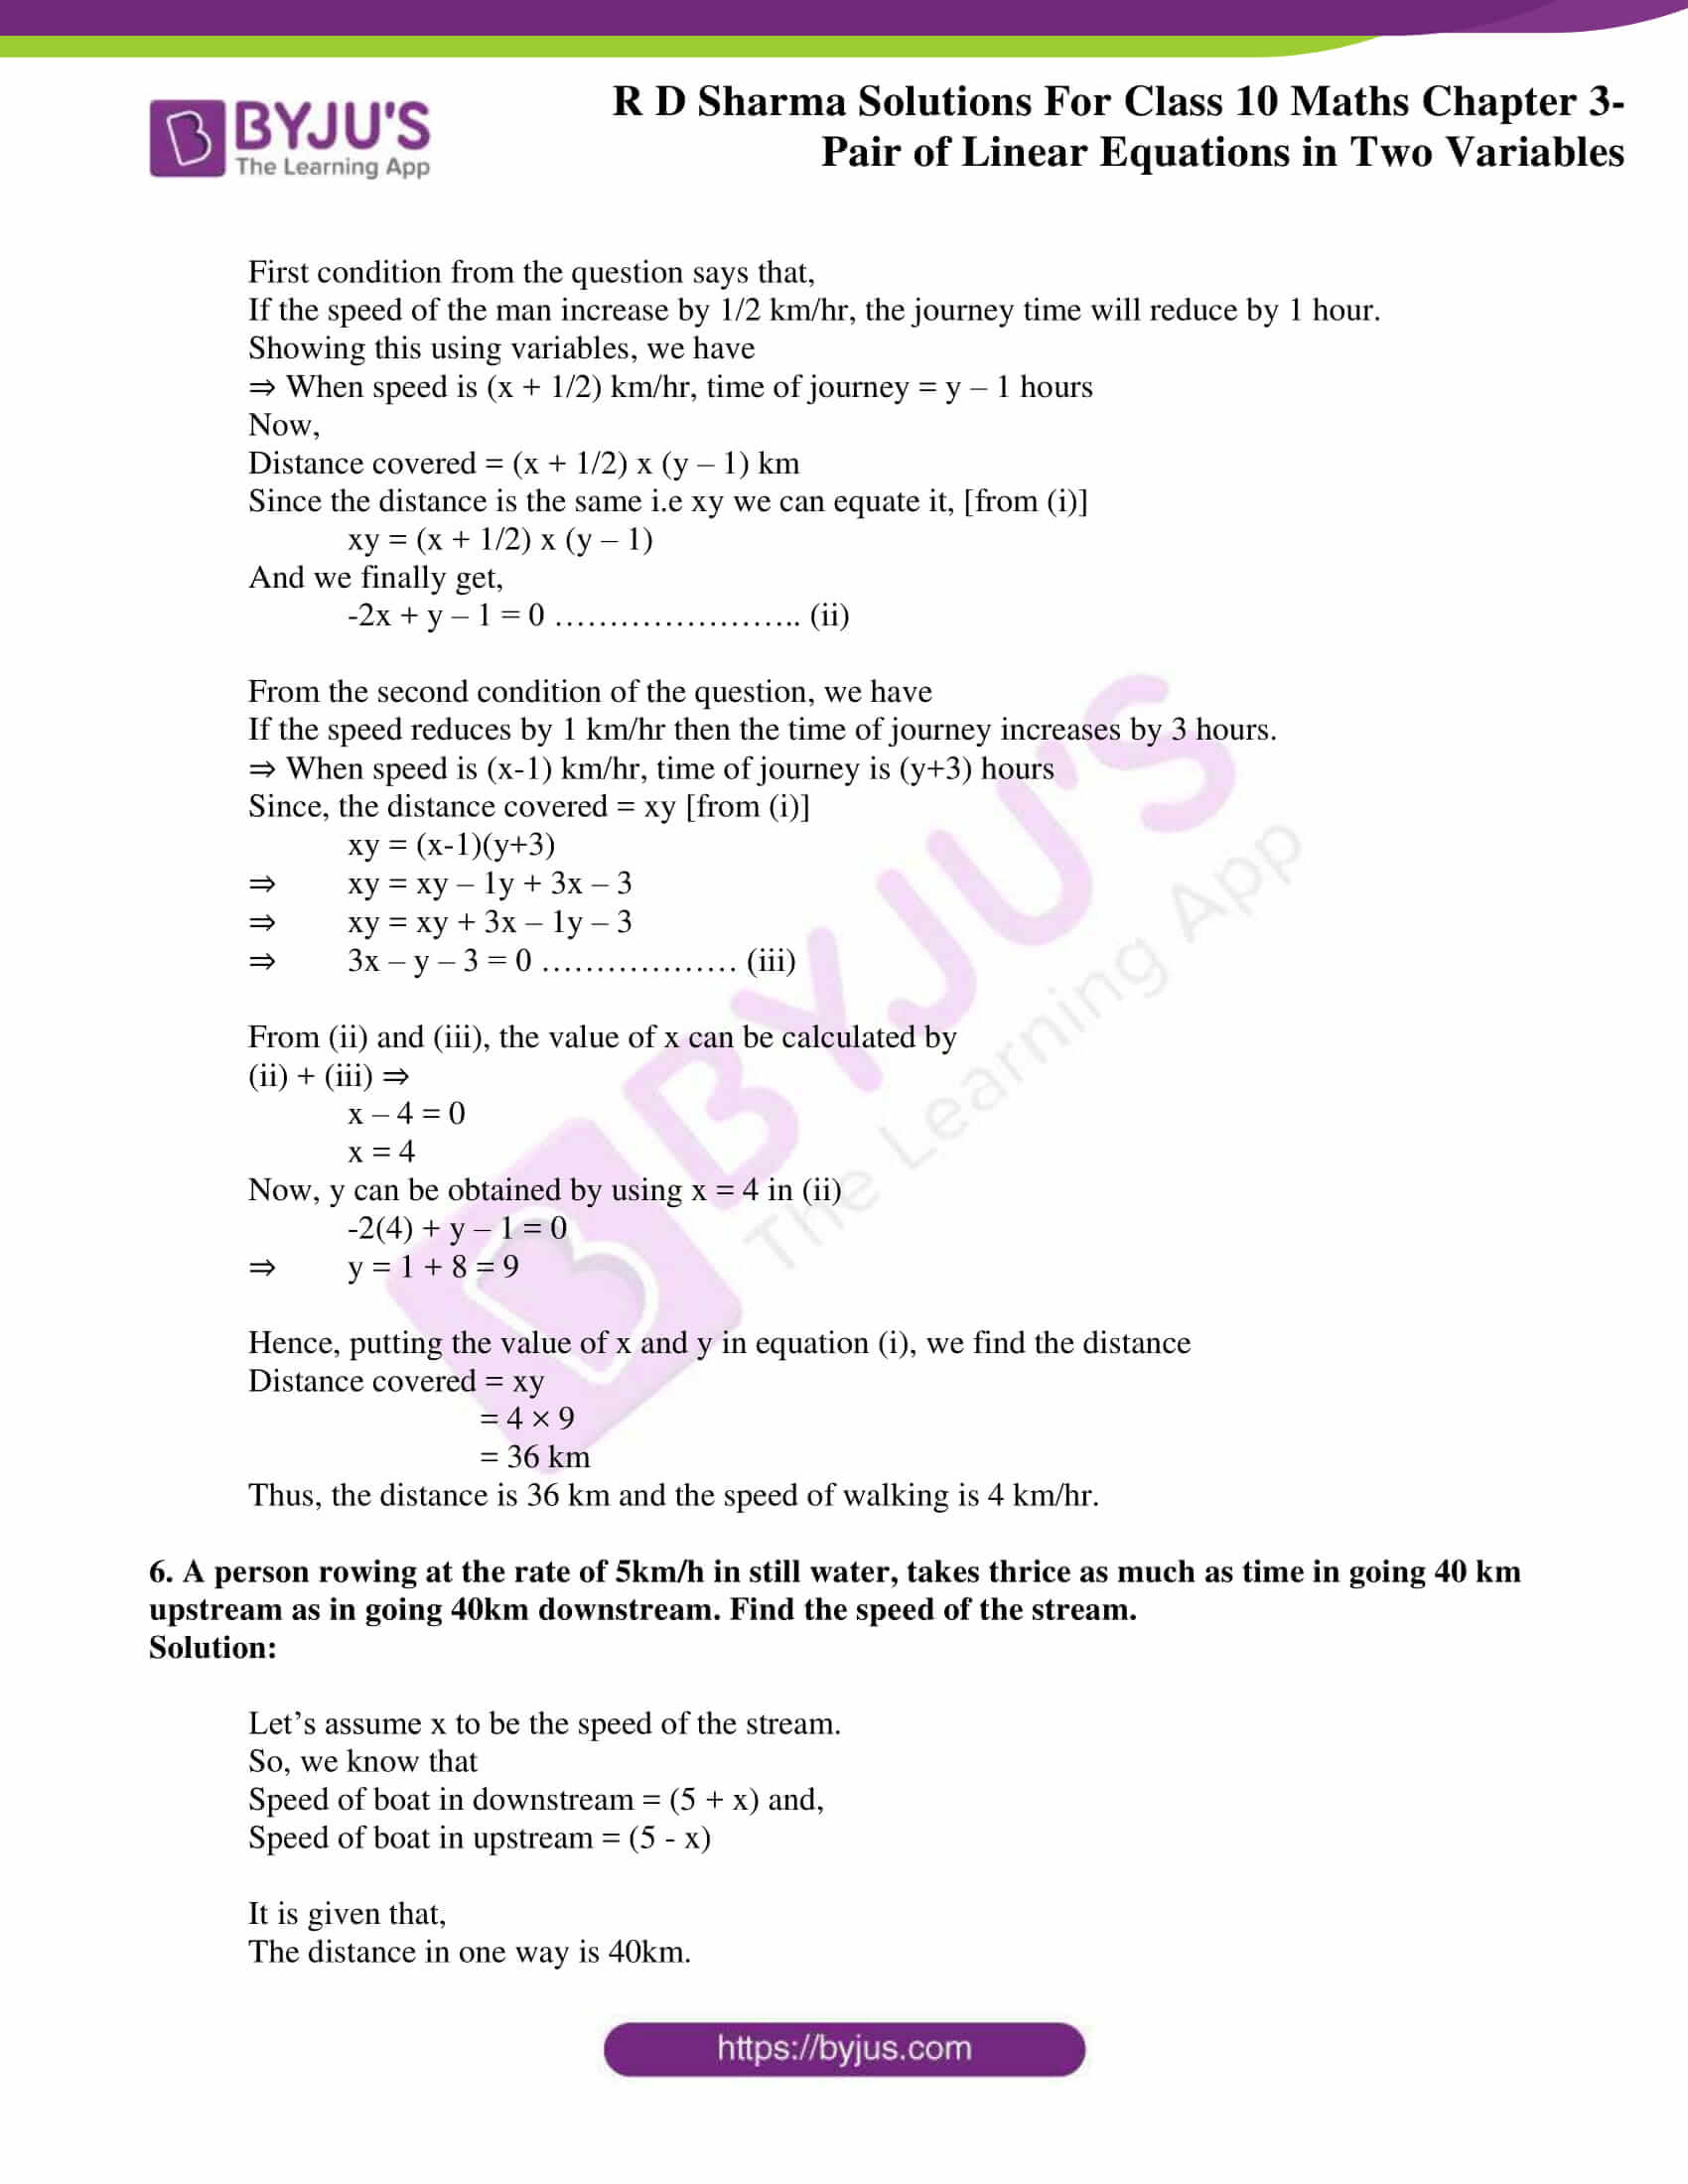 rd sharma solutions for class 10 chapter 3